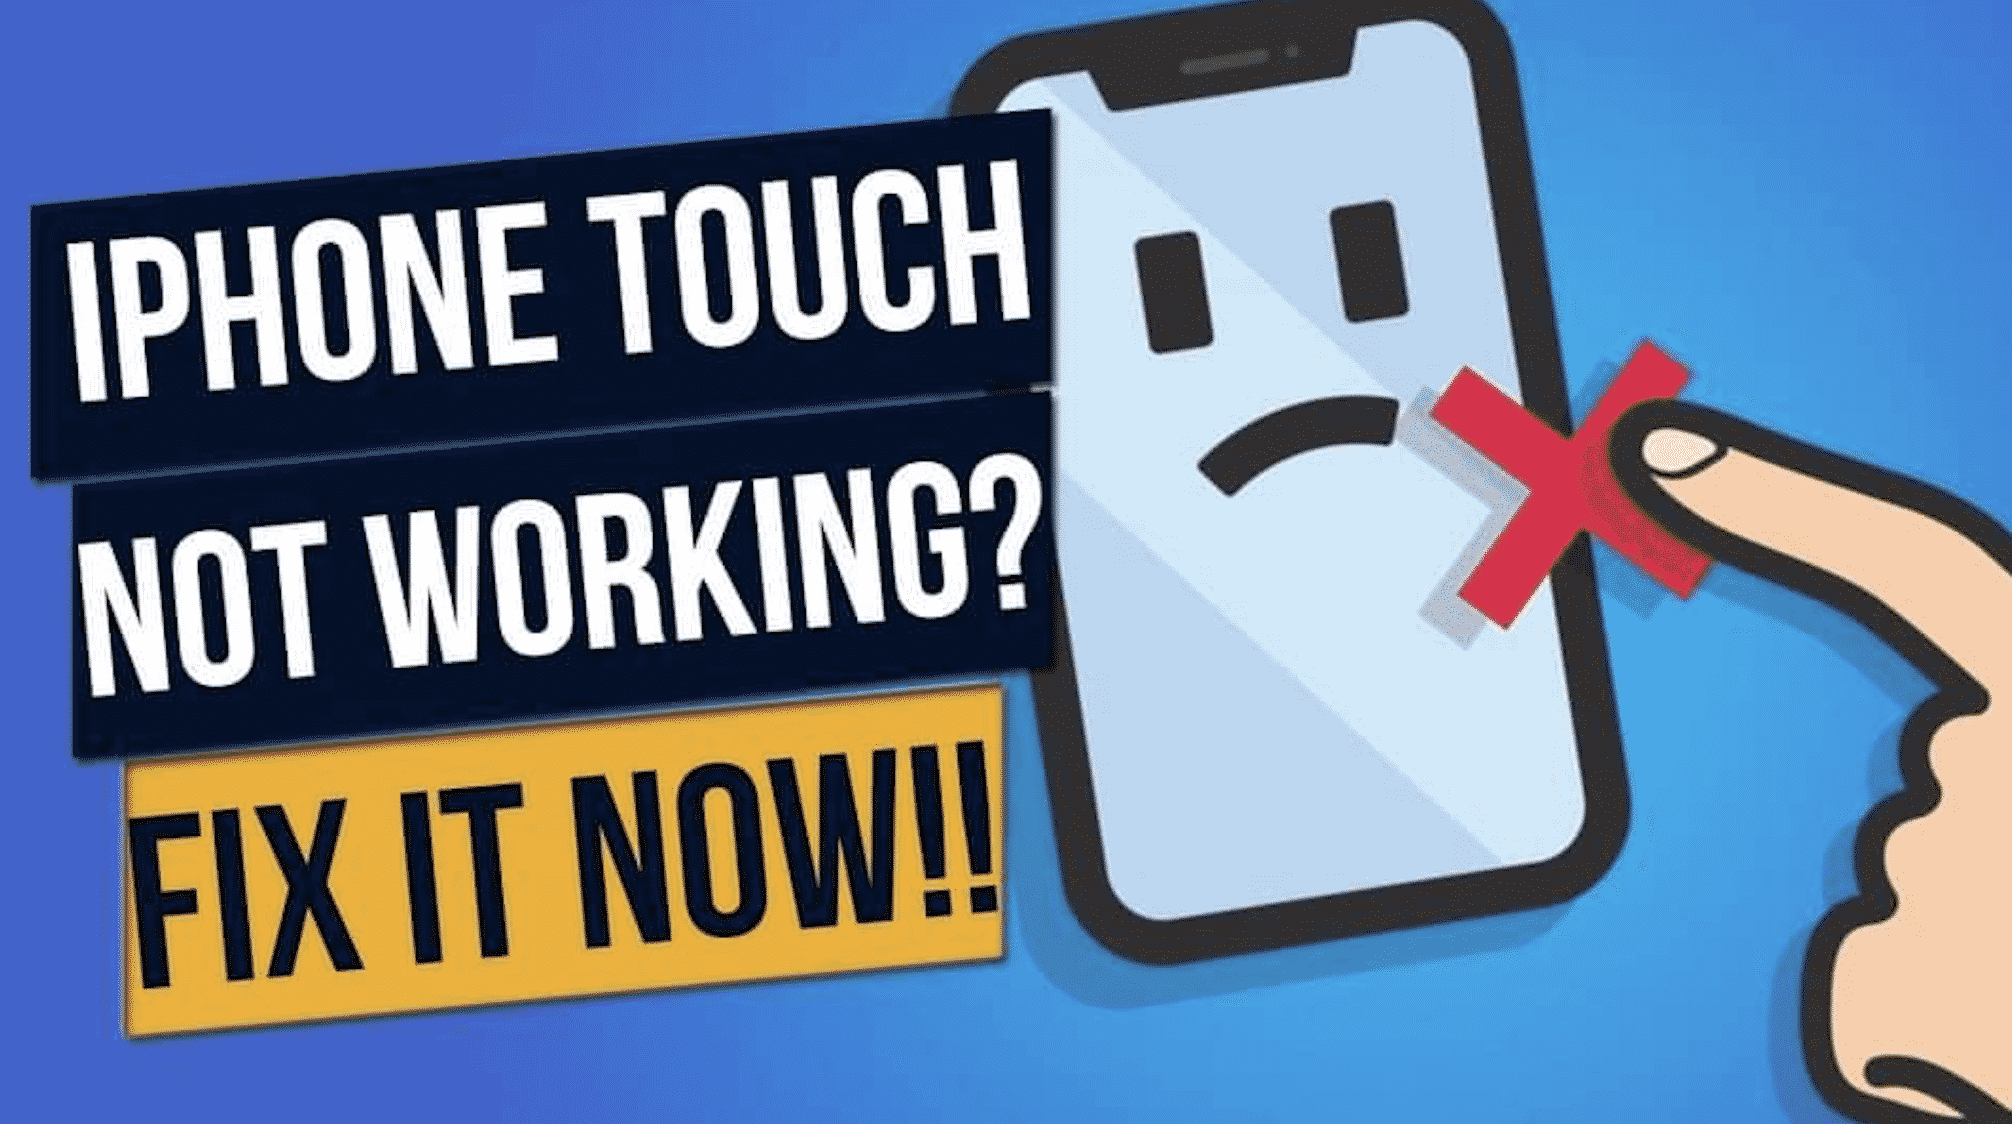 fix iPhone touch screen